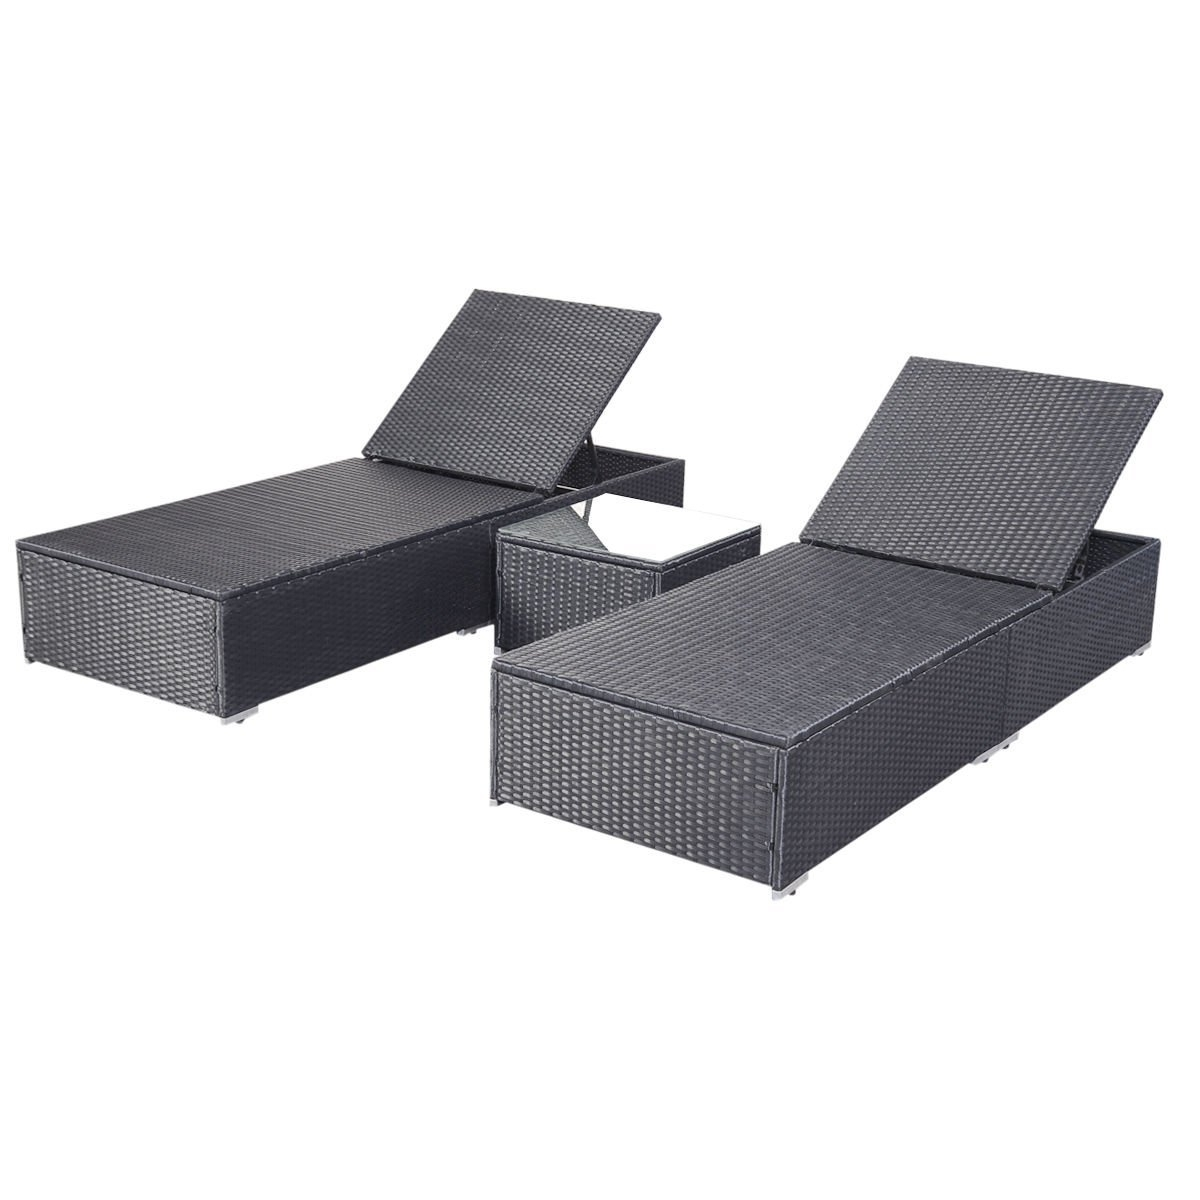 Rattan Chaise Lounges Pertaining To Fashionable Amazon : Giantex 3 Piece Wicker Rattan Chaise Lounge Chair Set (View 10 of 15)